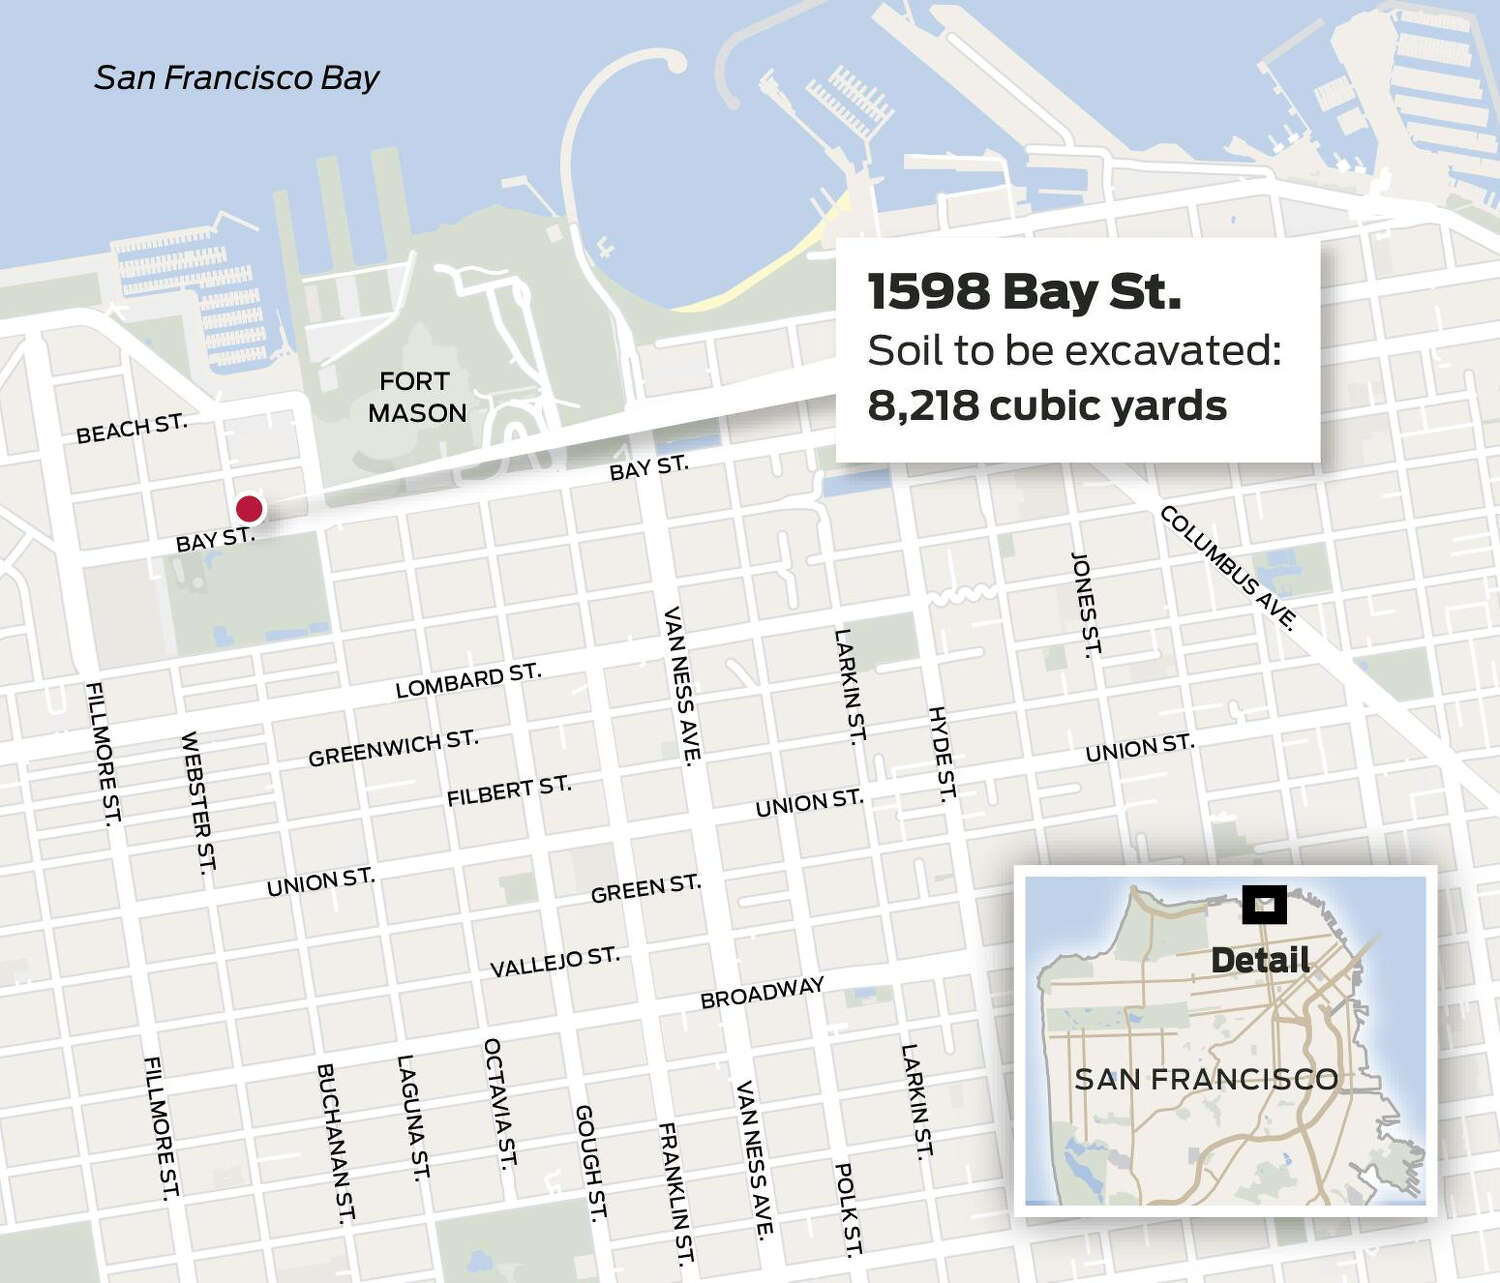 Map of 1598 Bay Street